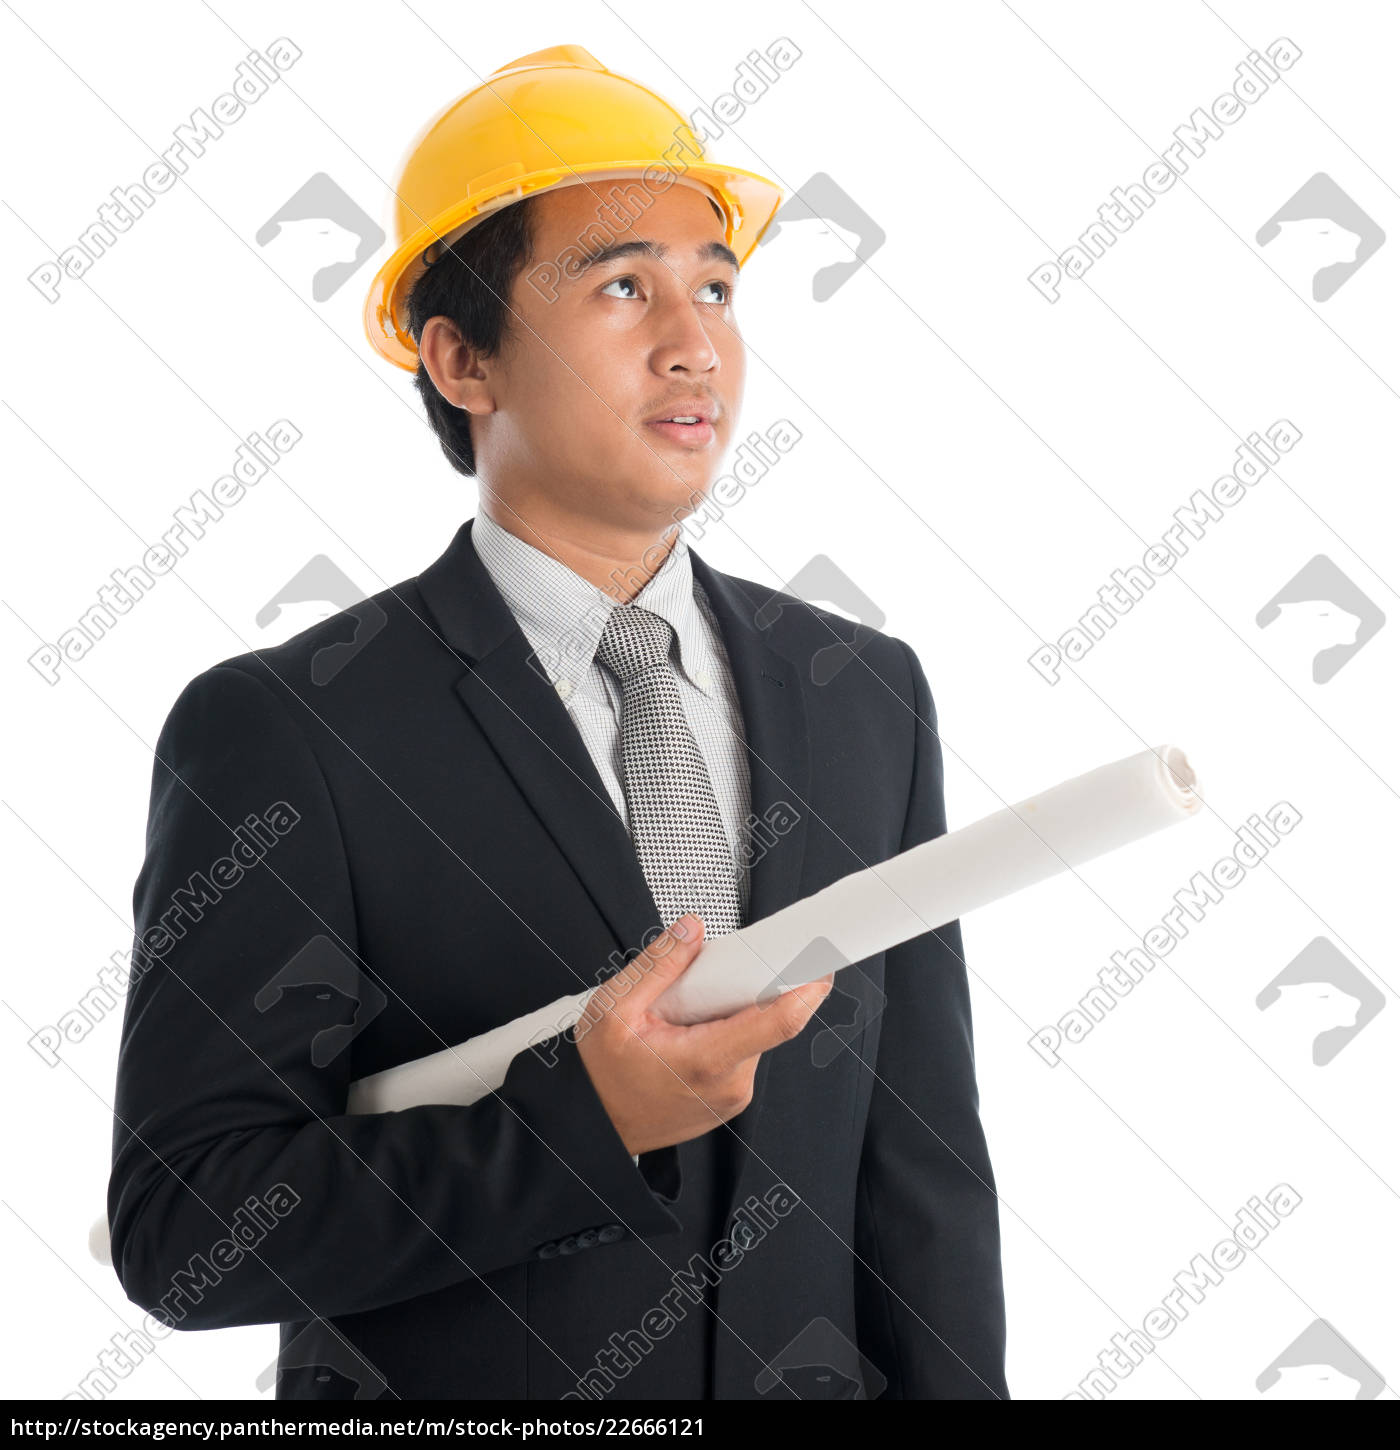 asian, man, with, safety, helmet, and - 22666121